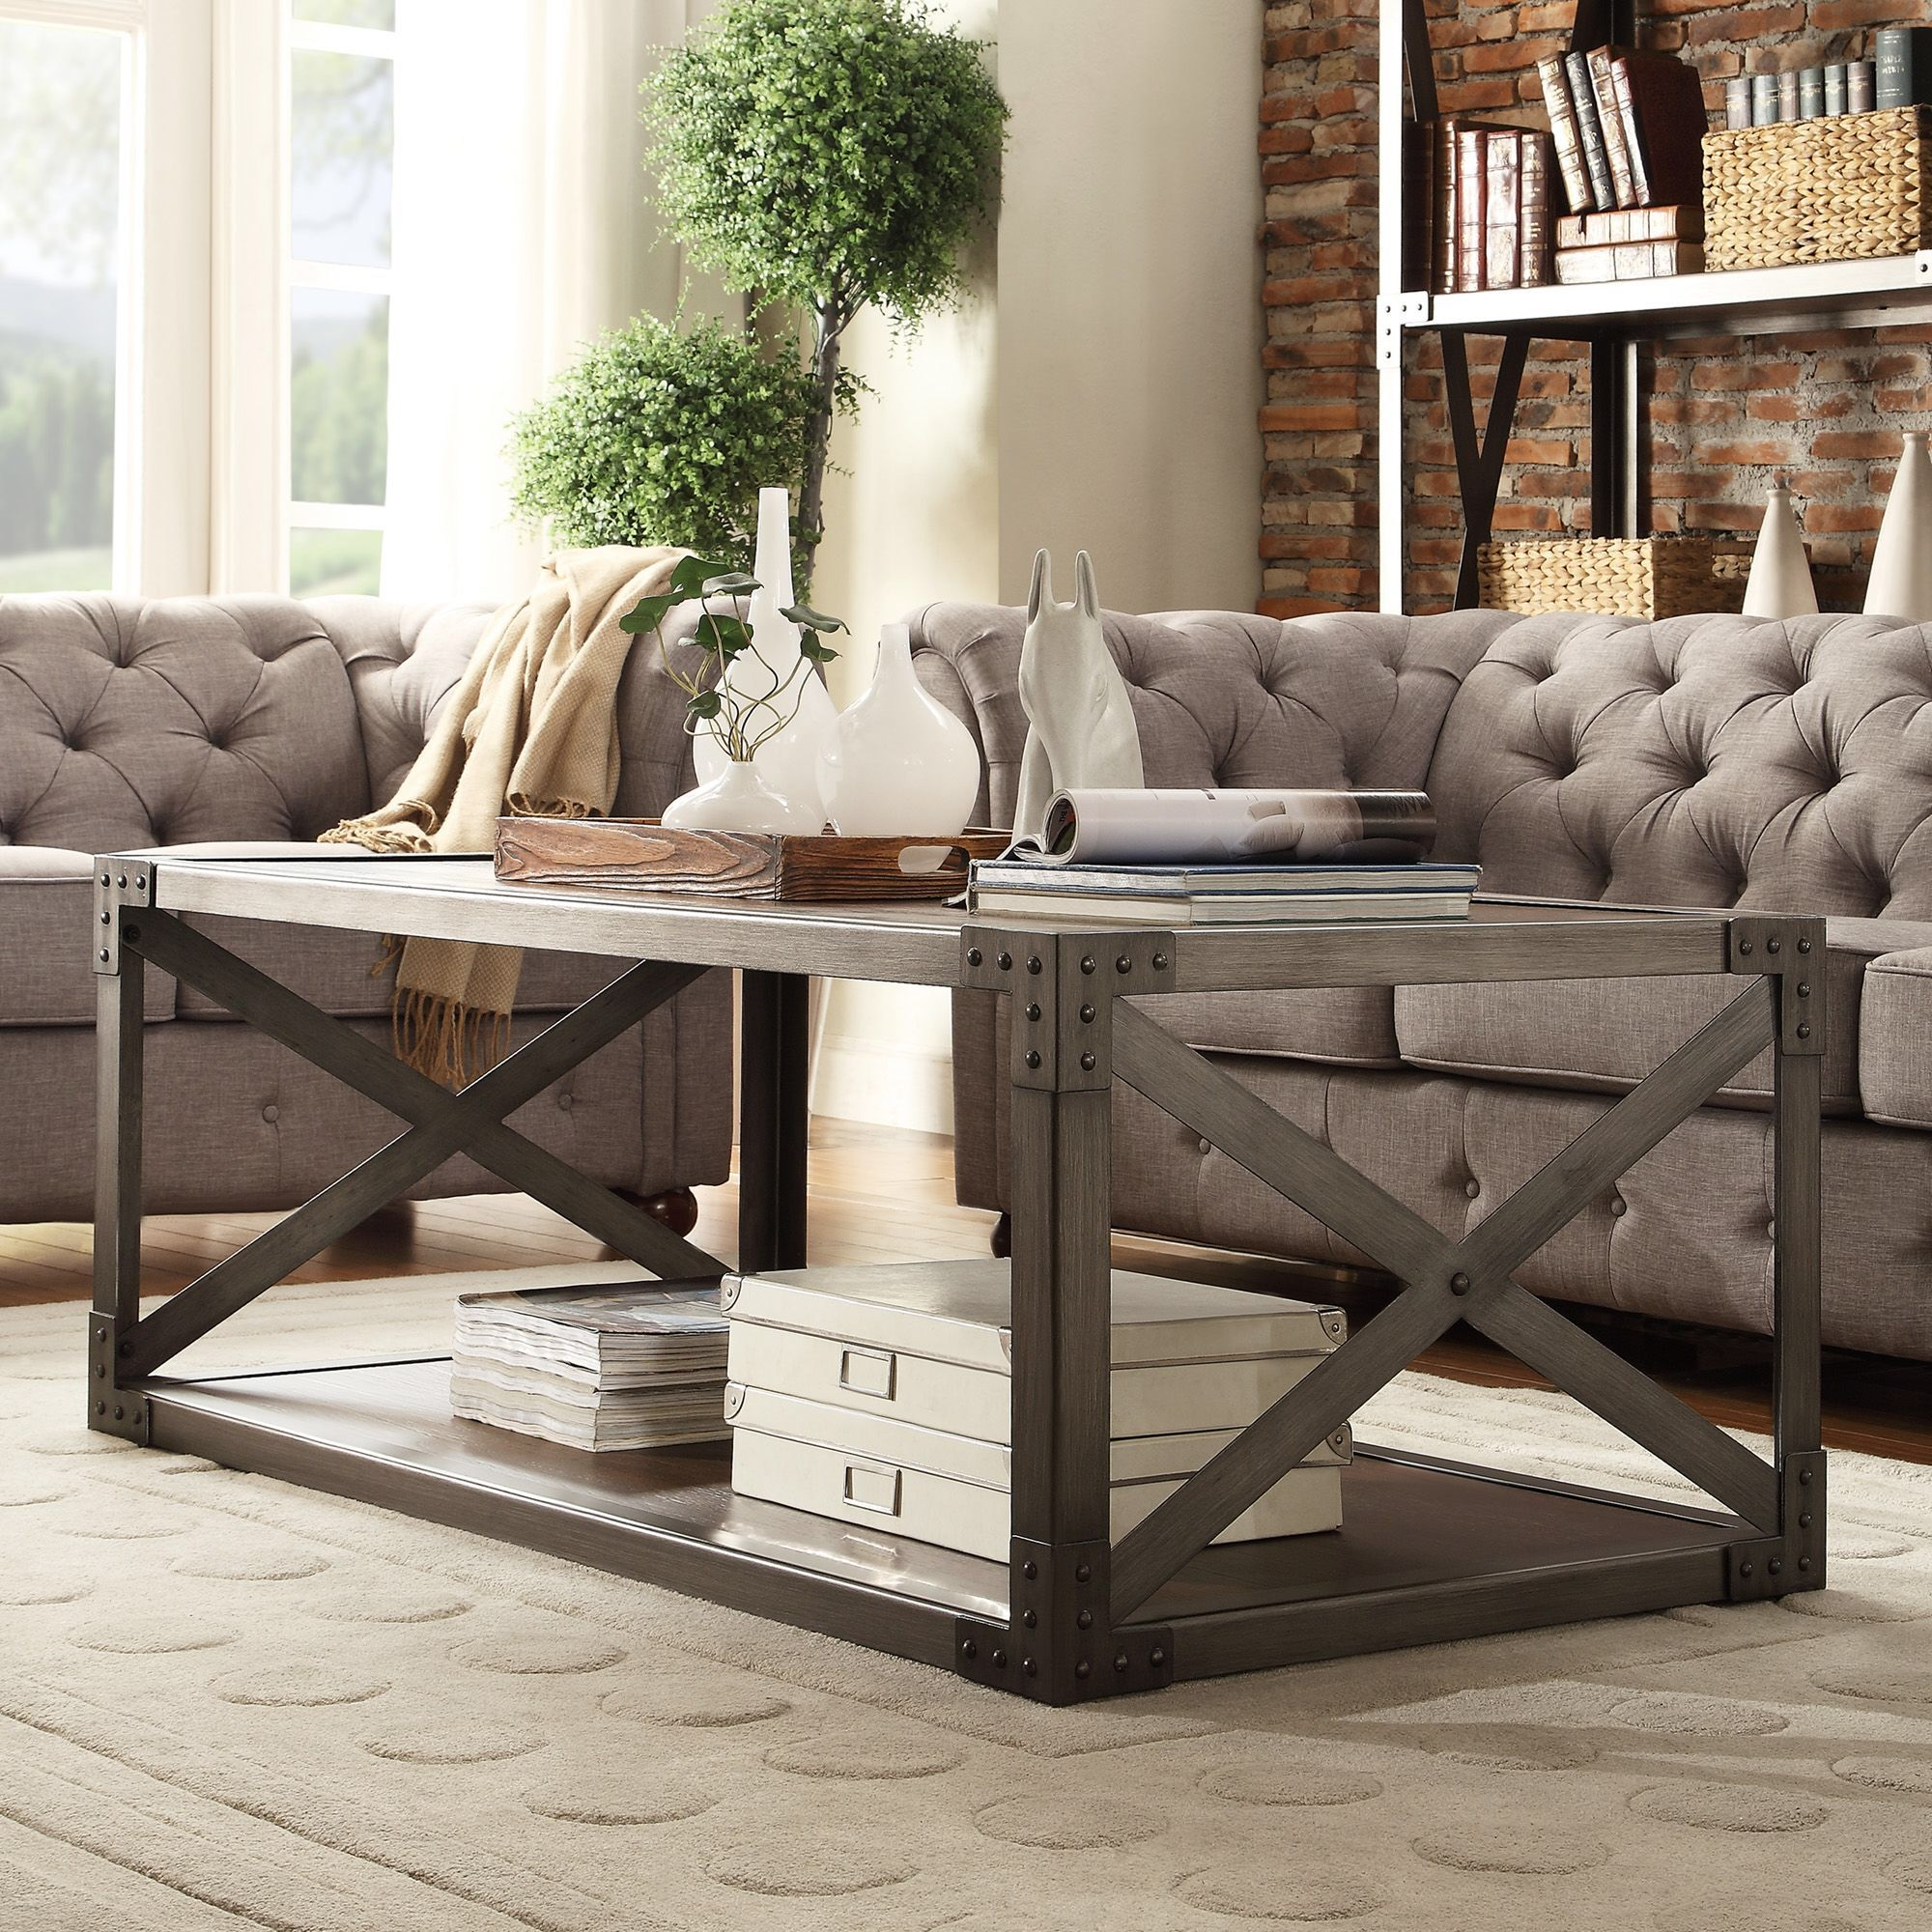 Sirius Coffee Table Small room magic Pinterest